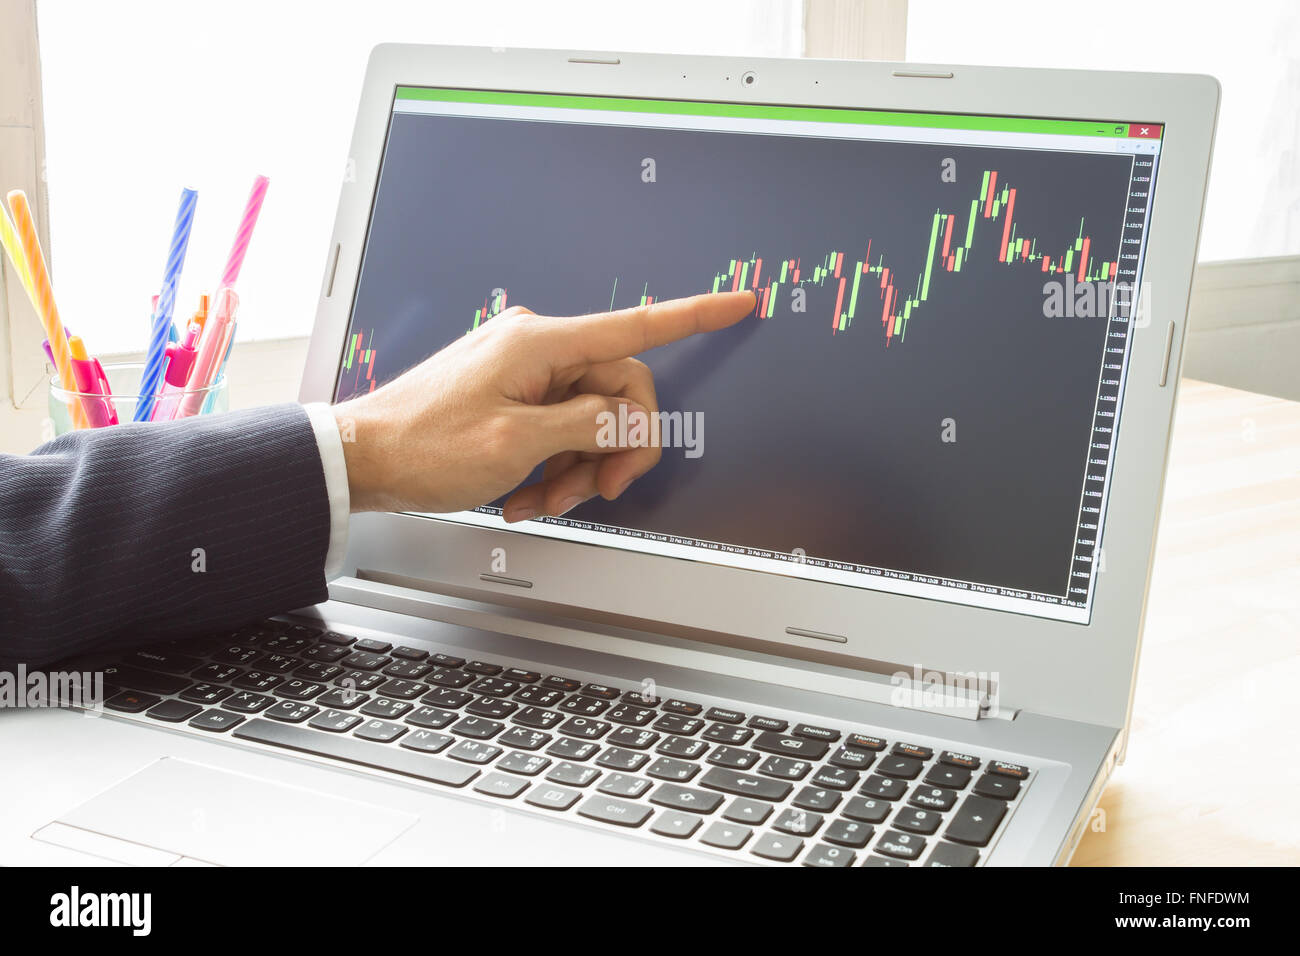 Businessman is pointing stock graph or Forex graph . Technical analysis forex or stock by professional trader - Stock Image